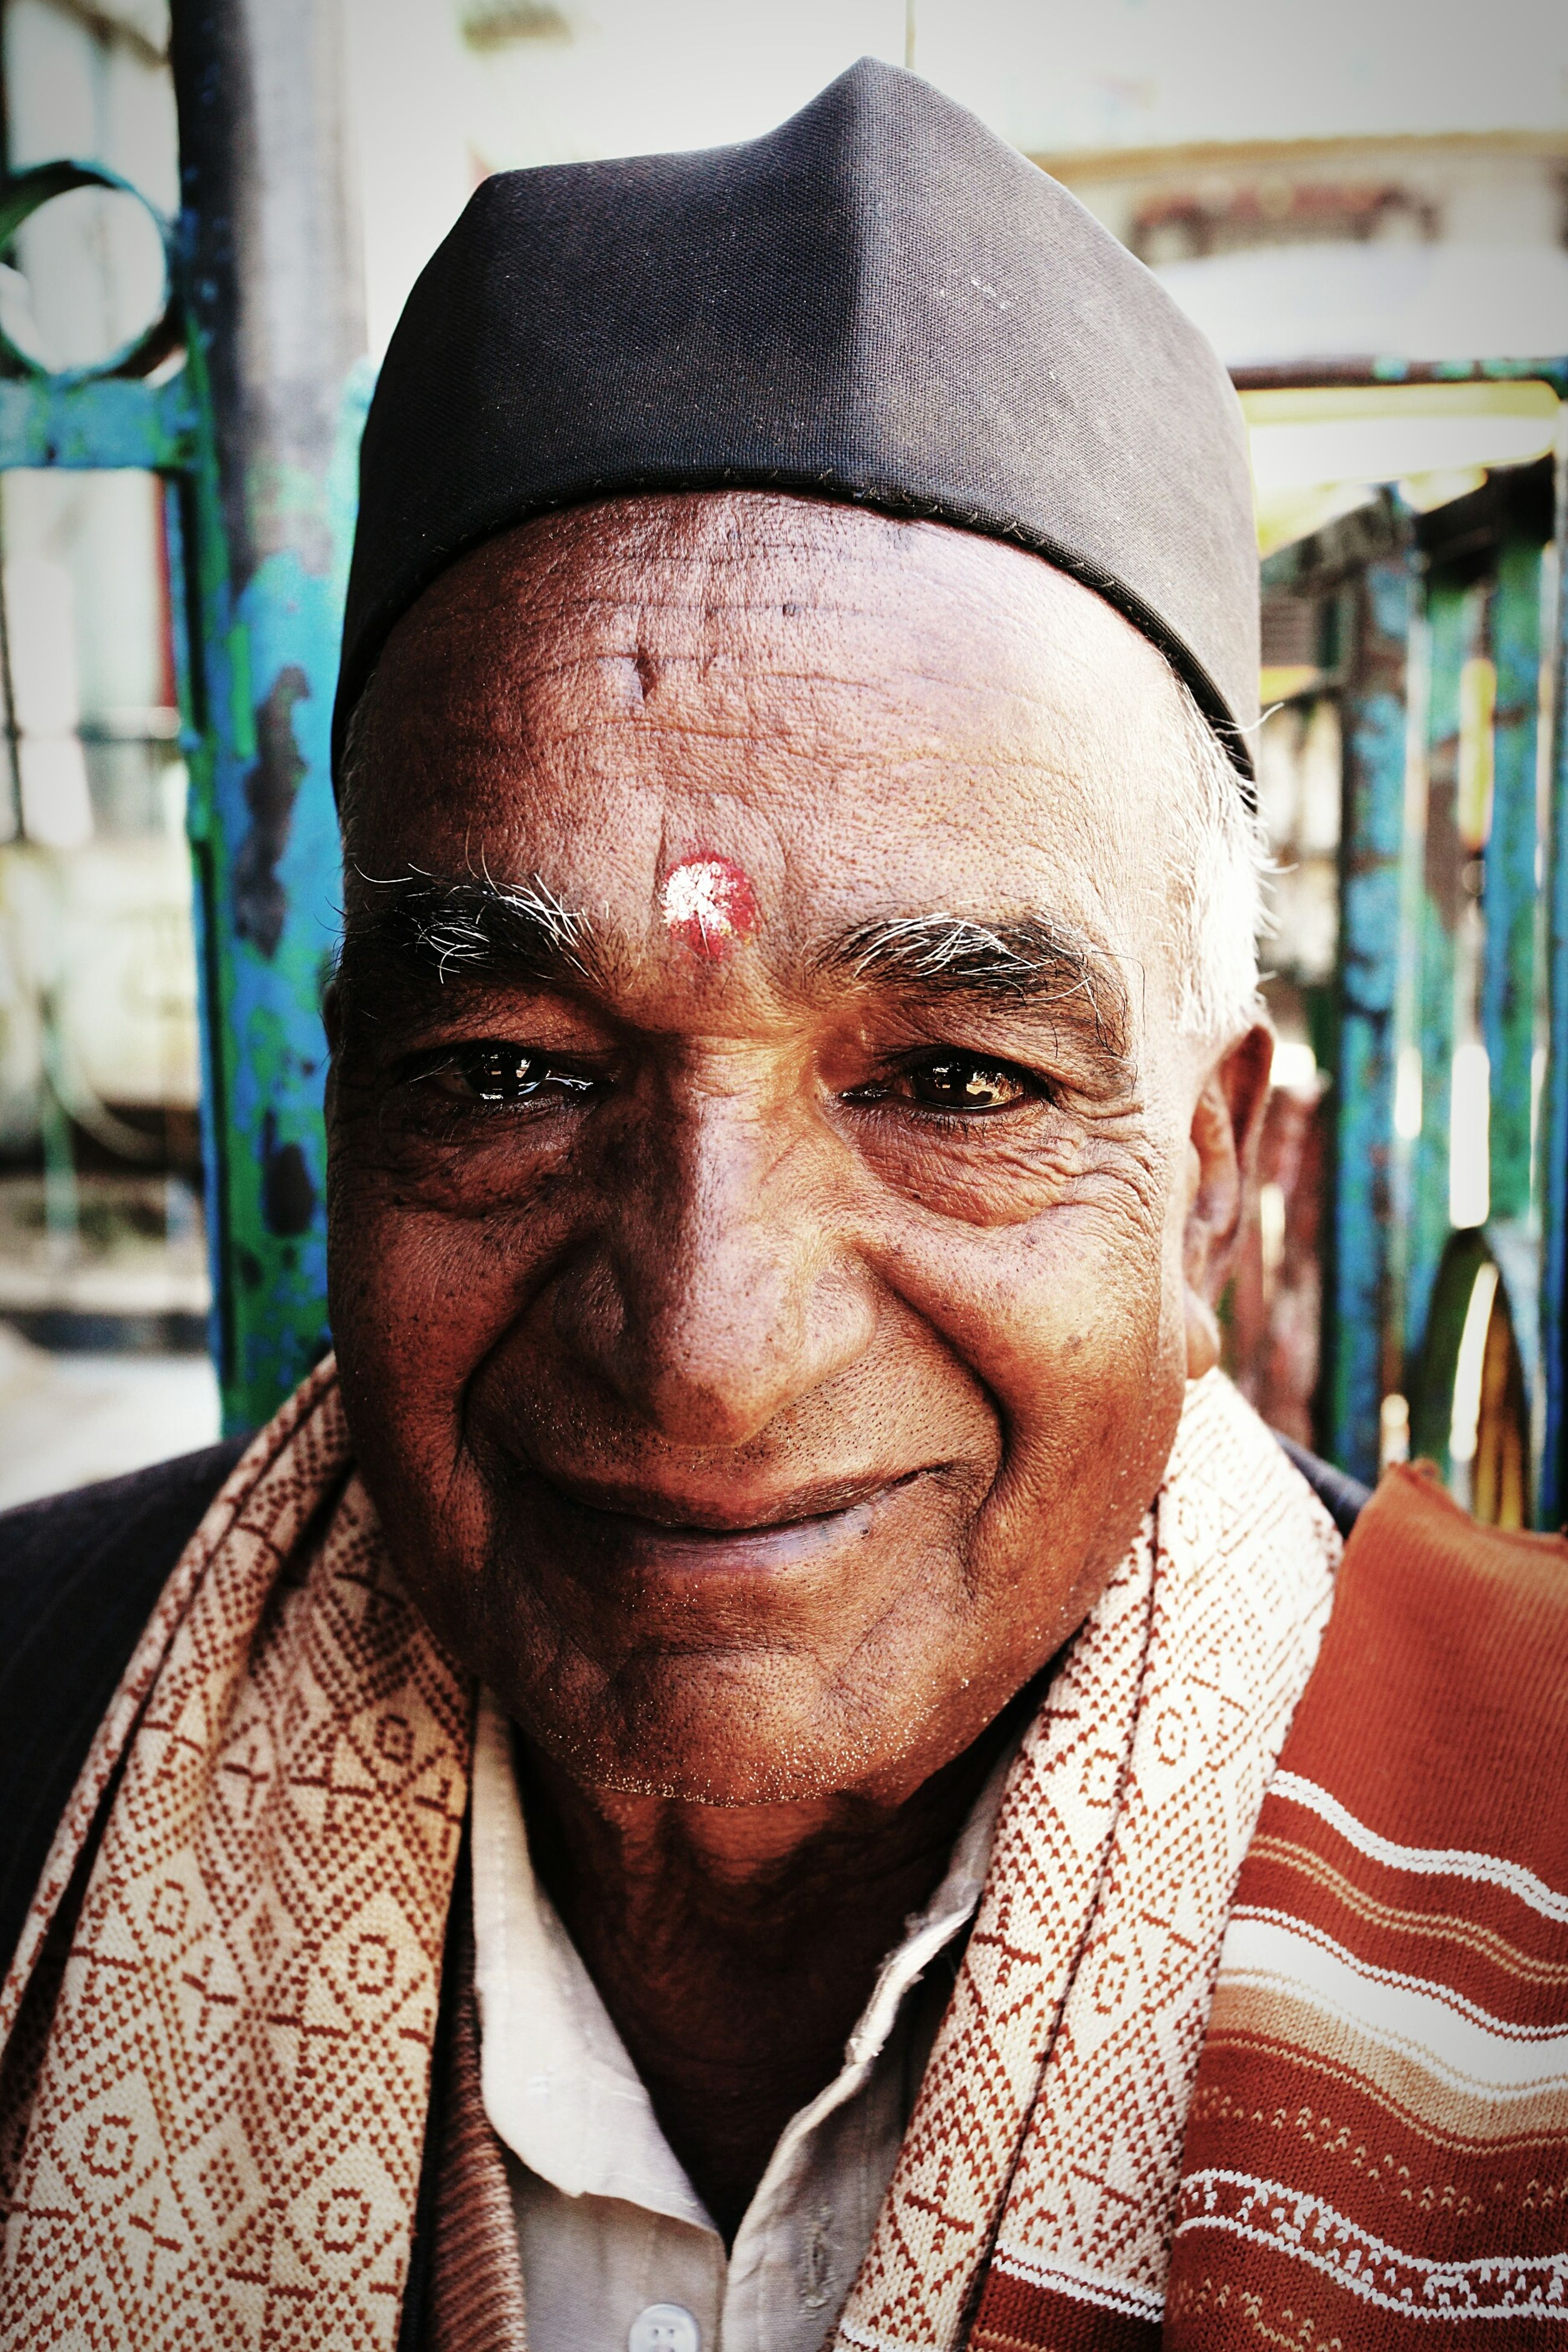 real people, senior adult, looking at camera, one person, portrait, front view, senior men, lifestyles, leisure activity, focus on foreground, headshot, close-up, human face, outdoors, day, turban